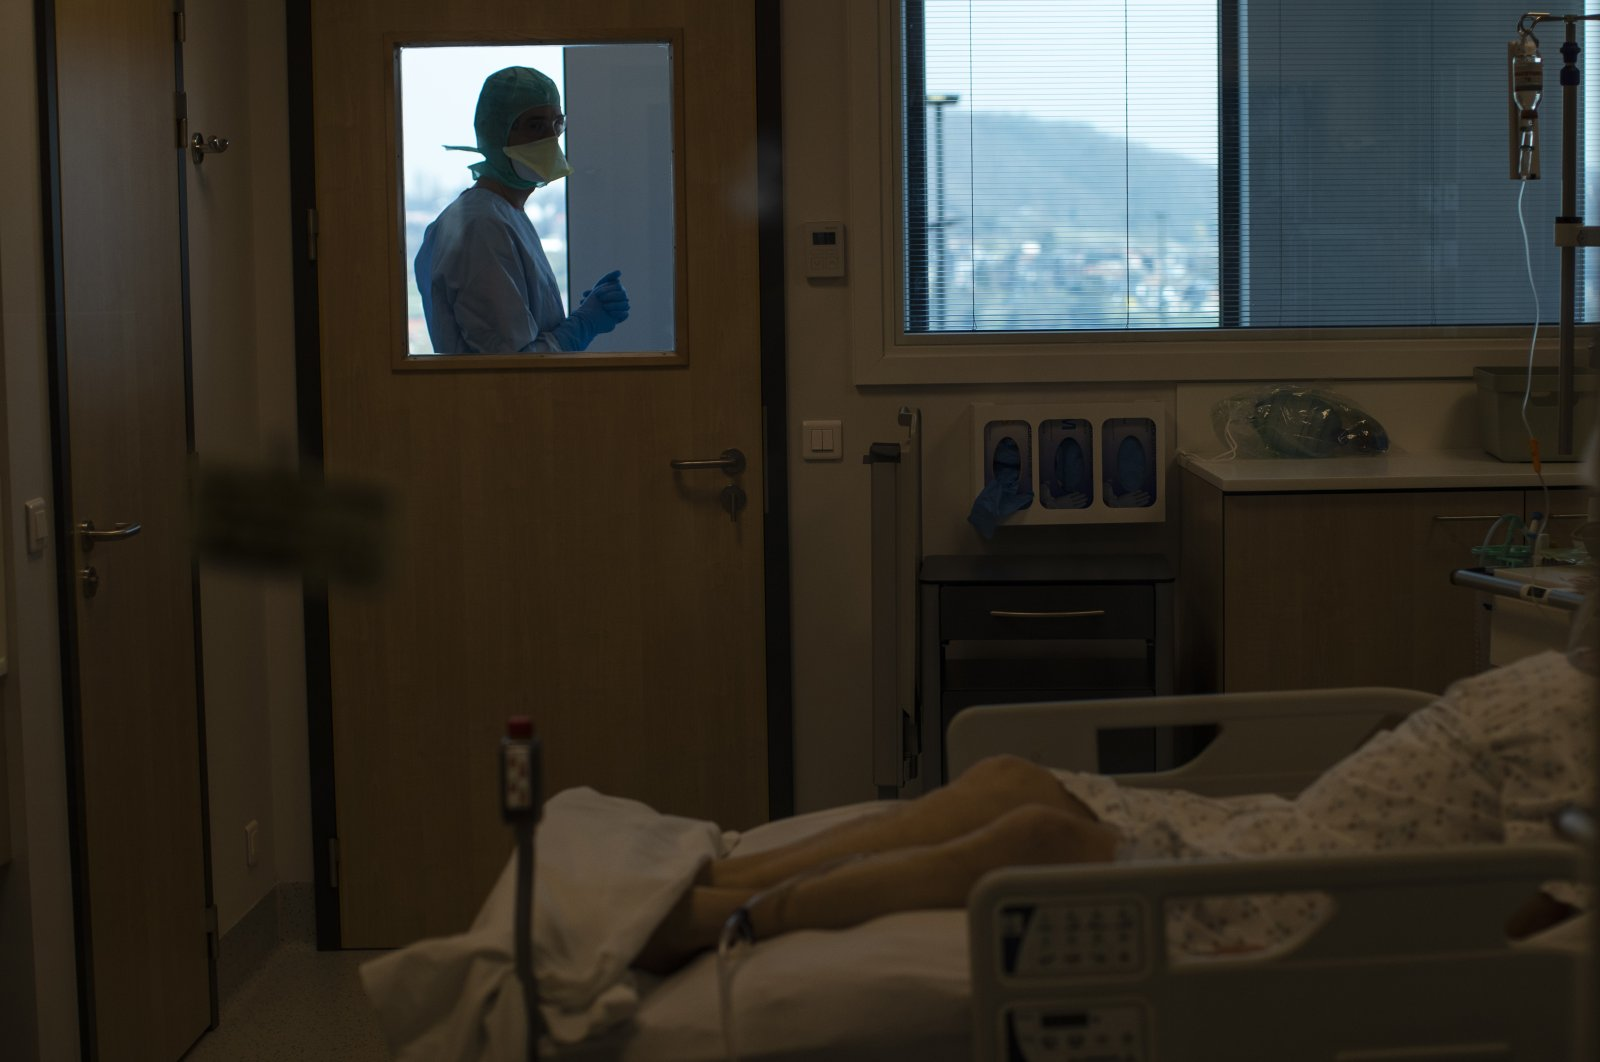 In this photograph taken from behind a window, medical personnel work in the intensive care ward for COVID-19 patients at the MontLegia CHC hospital in Liege, Belgium, Friday, March 27, 2020. (AP Photo)